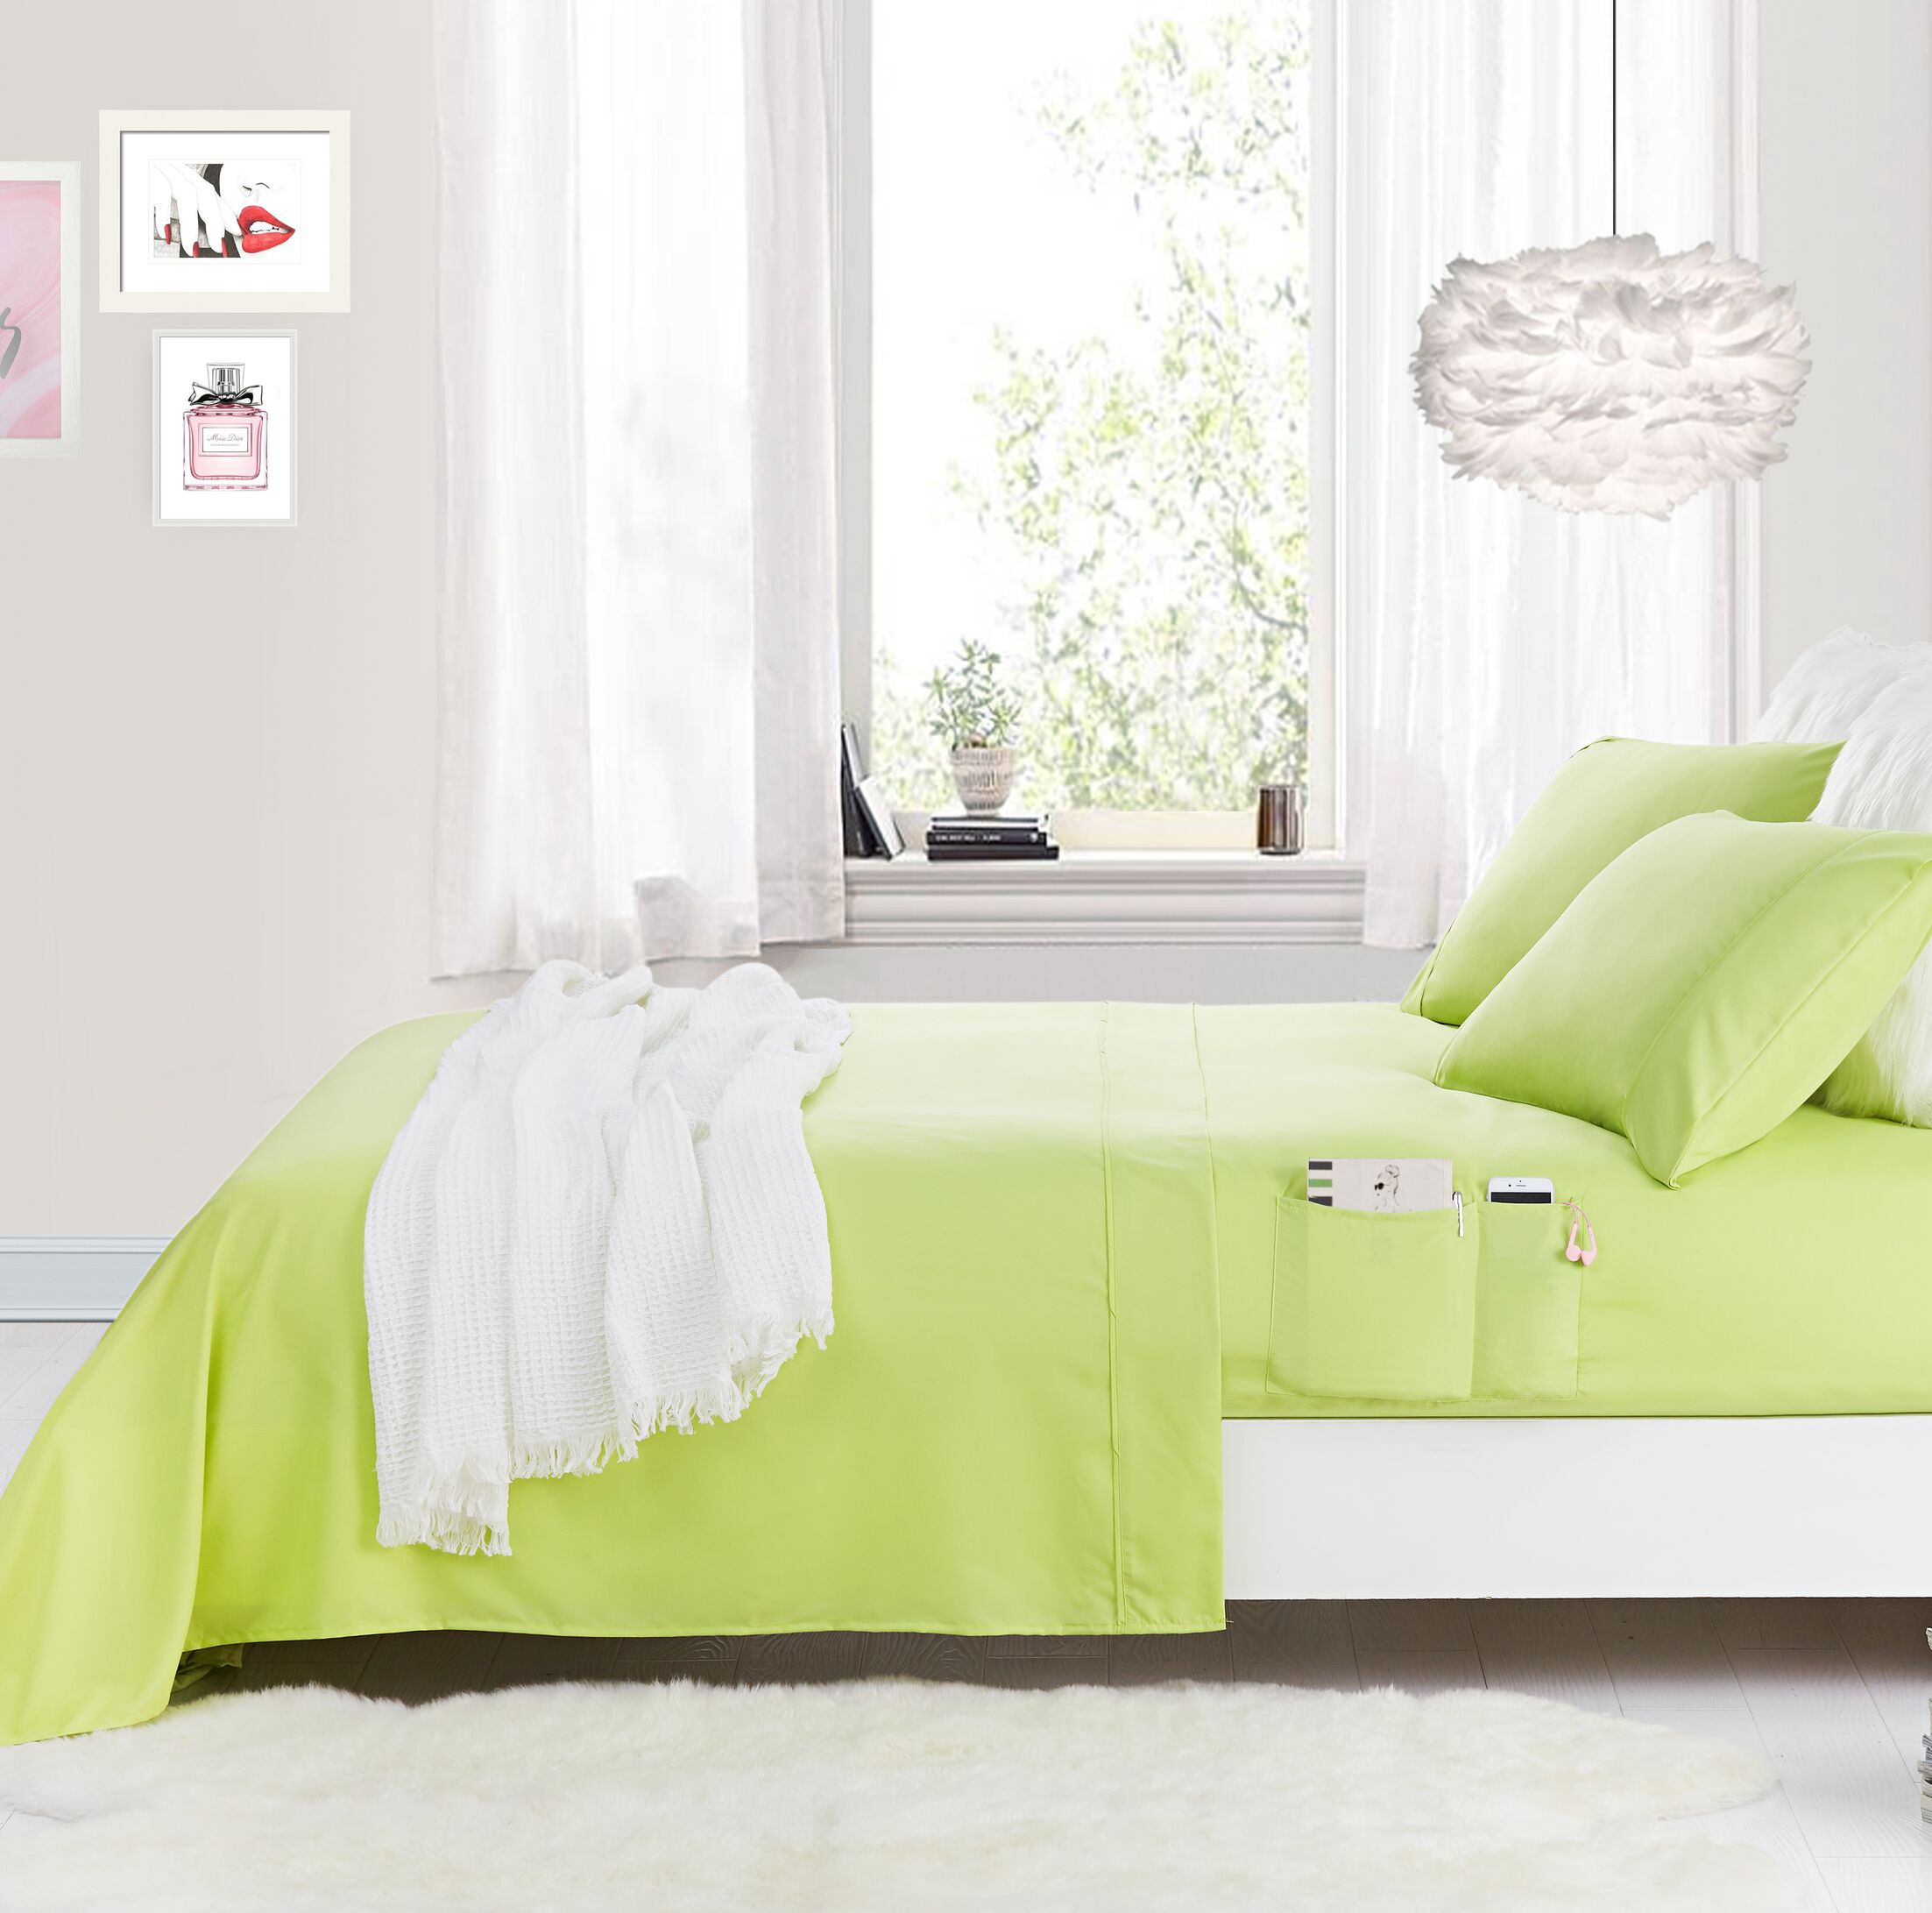 Superior Smooth Microfiber Sheet Set Size: Twin Extra Large, Color: Green